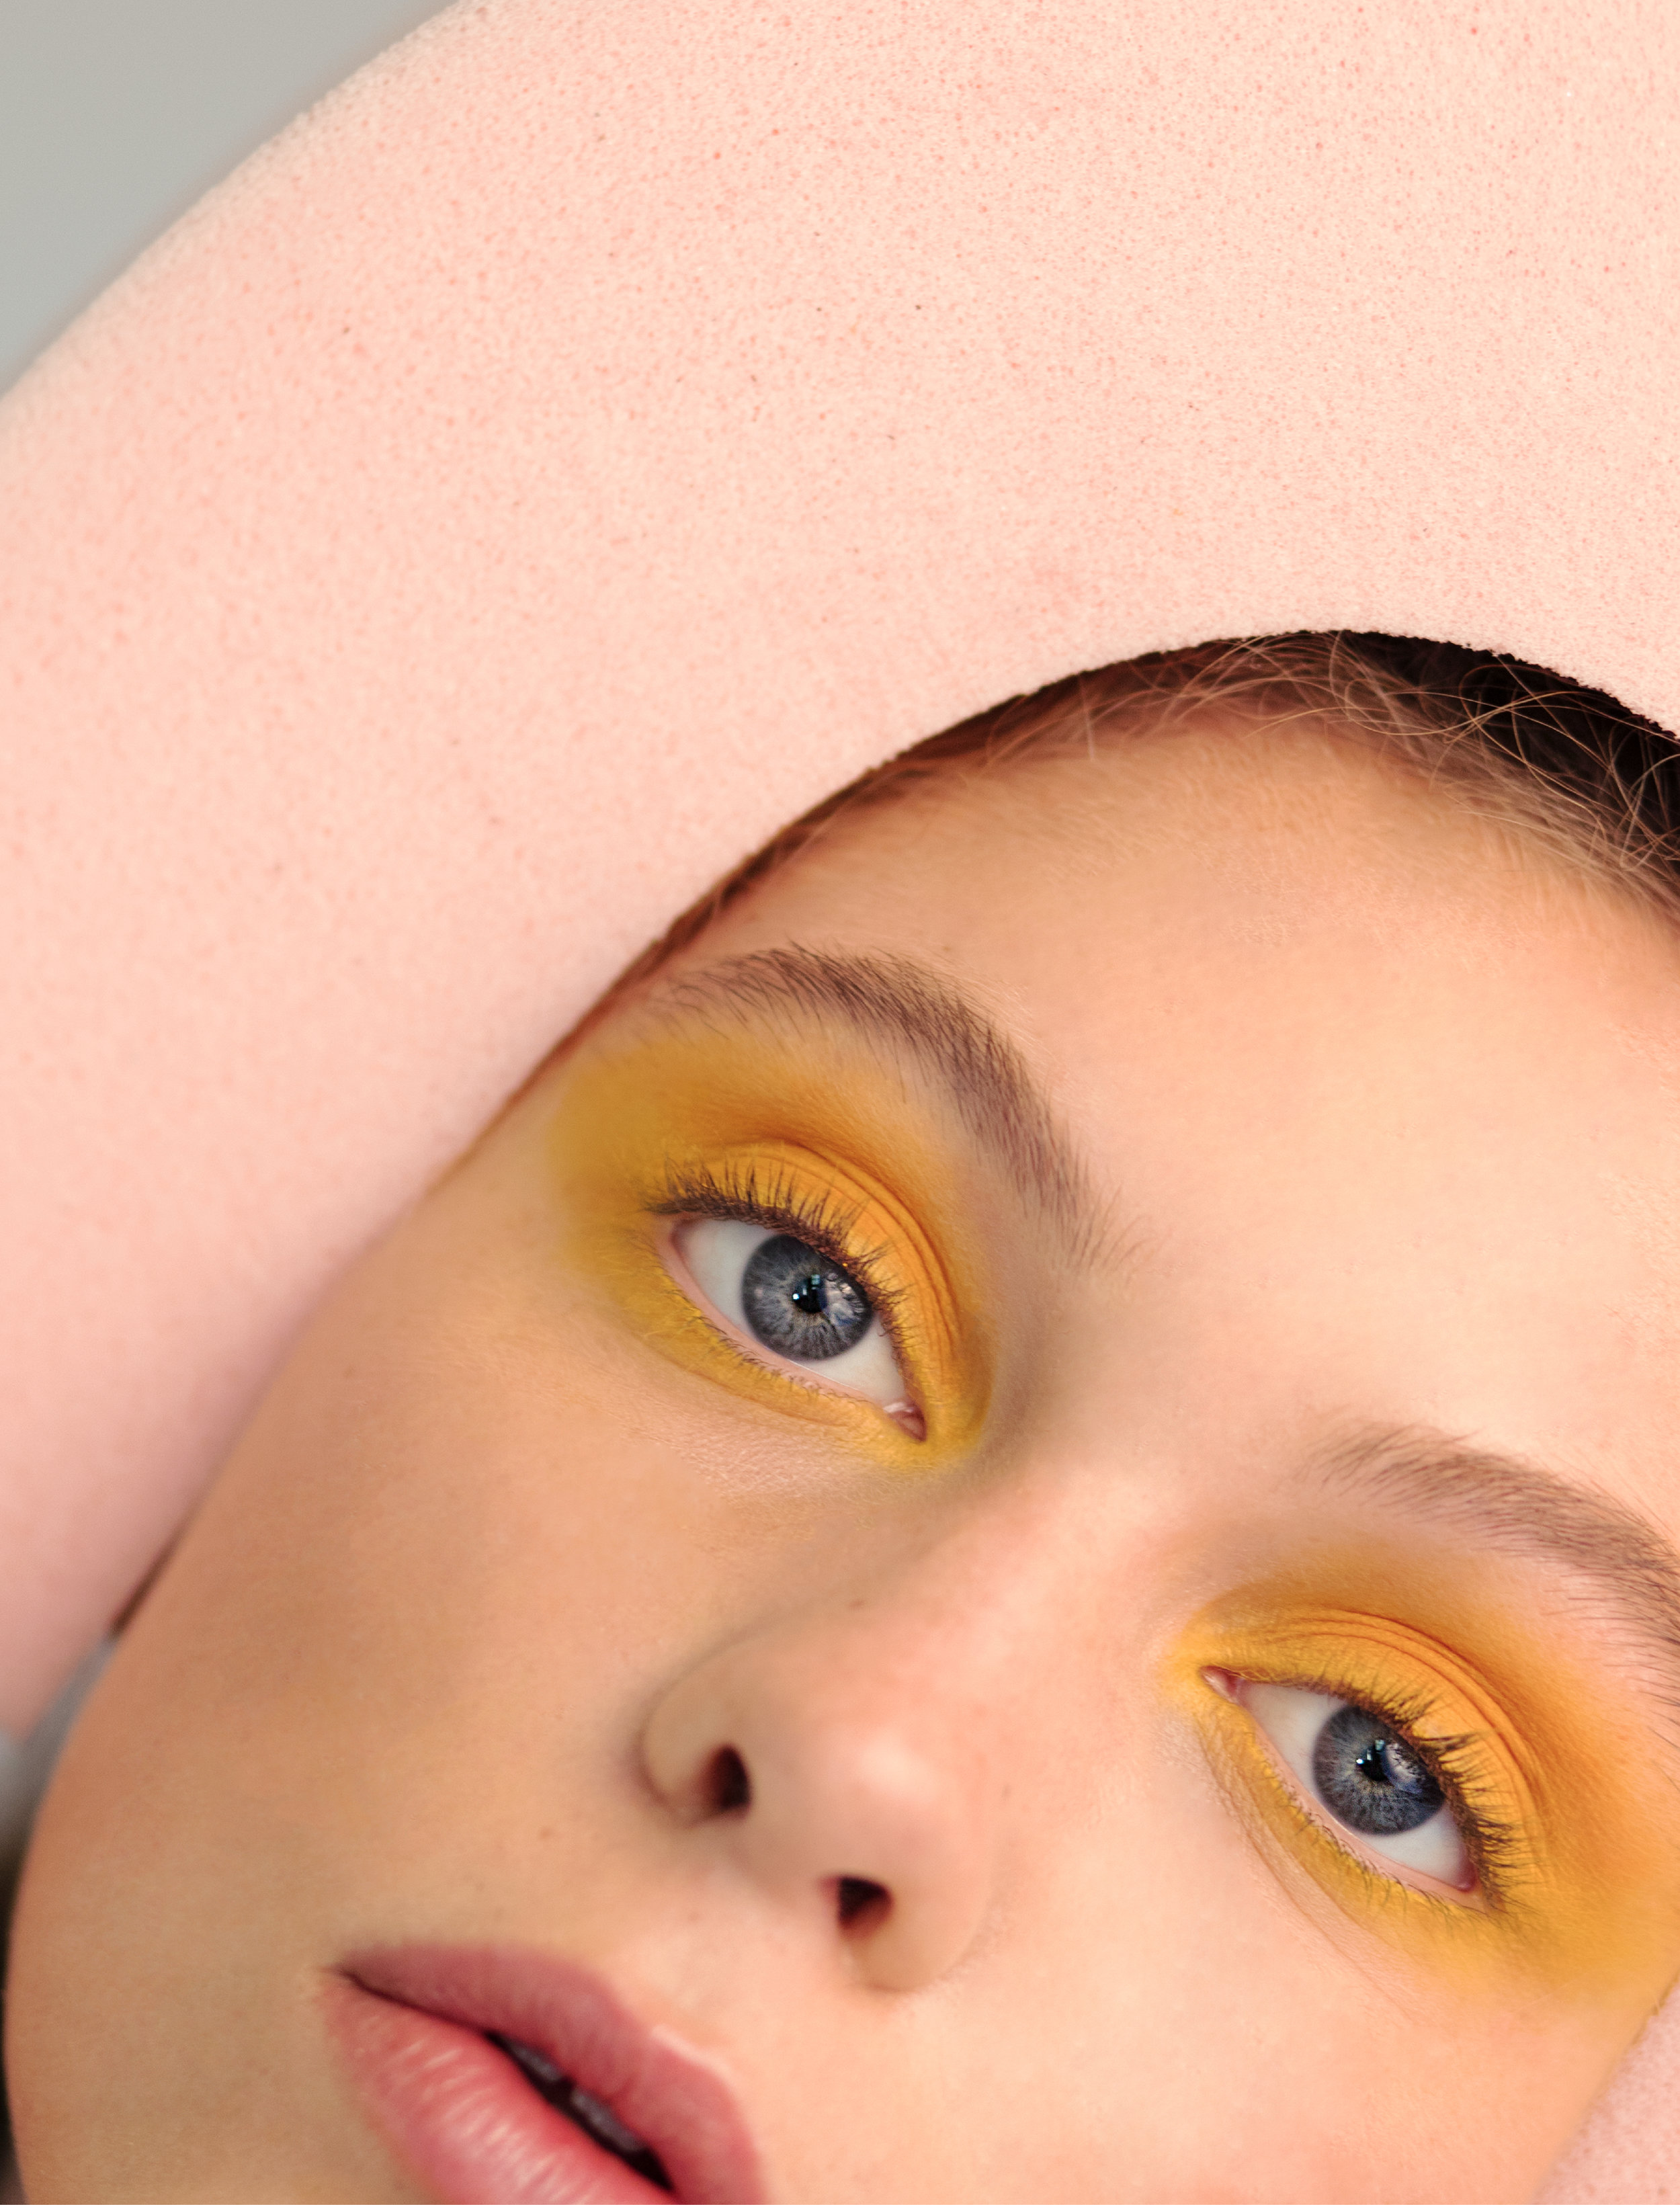 Beauty Editorial  /  PHOTOS: Sophie van Hasselt /  STYLING : me / MUAH: Daphne Weijers / MODEL: Sophie Petterin